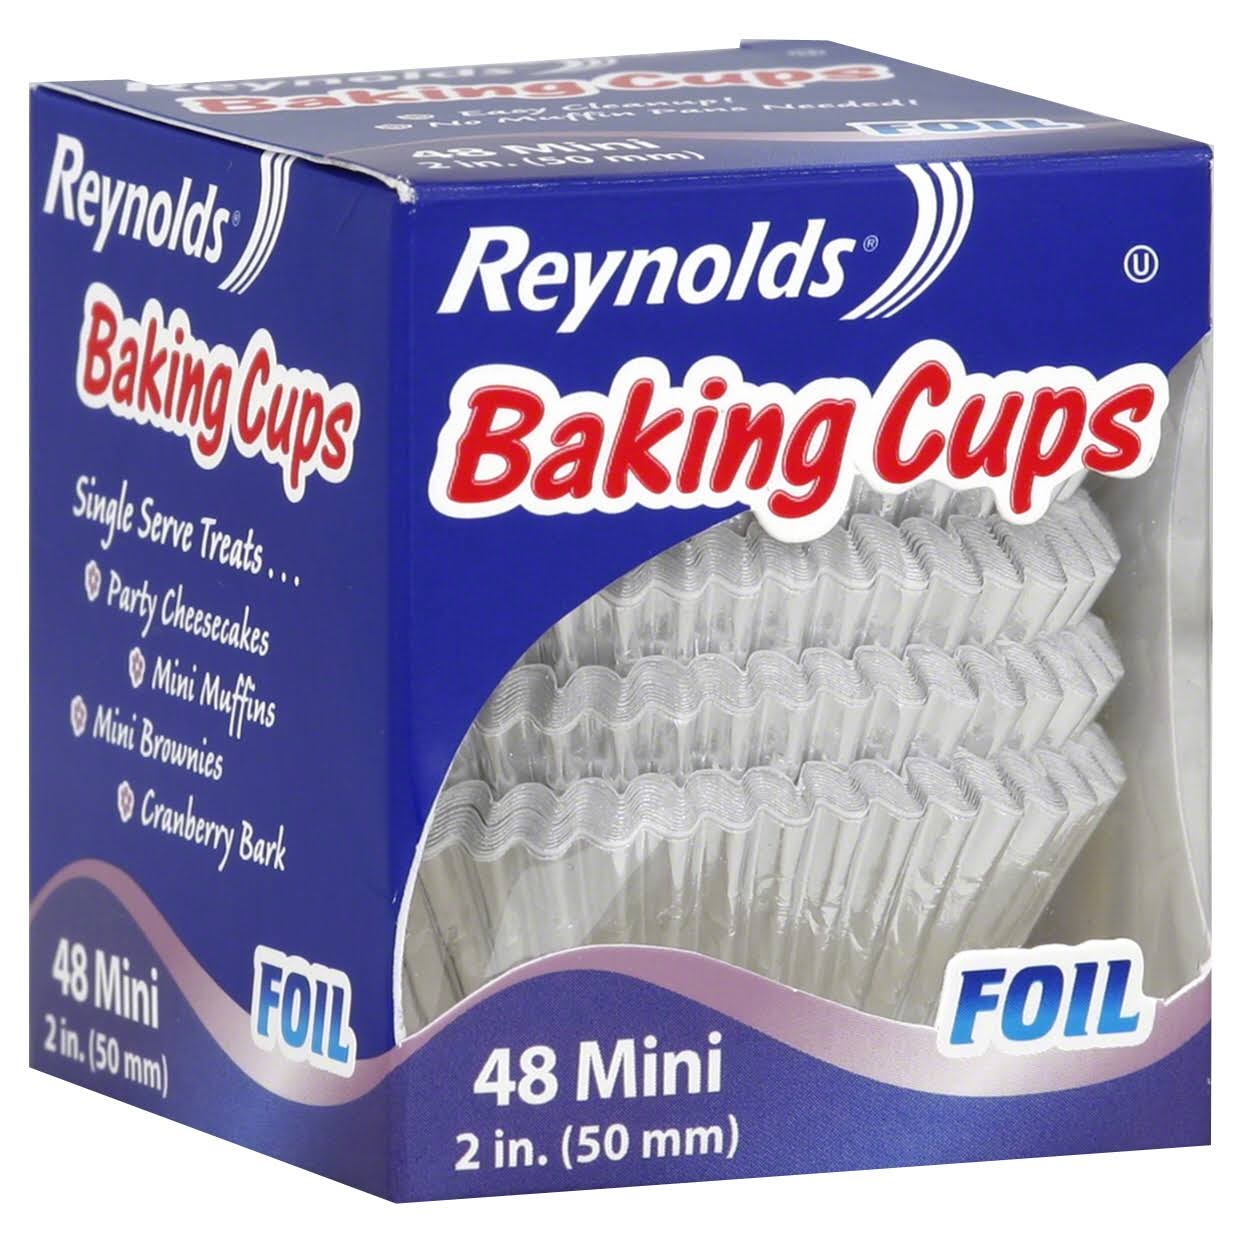 Reynolds Baking Cups - 48 Mini Foil Cups, 50mm